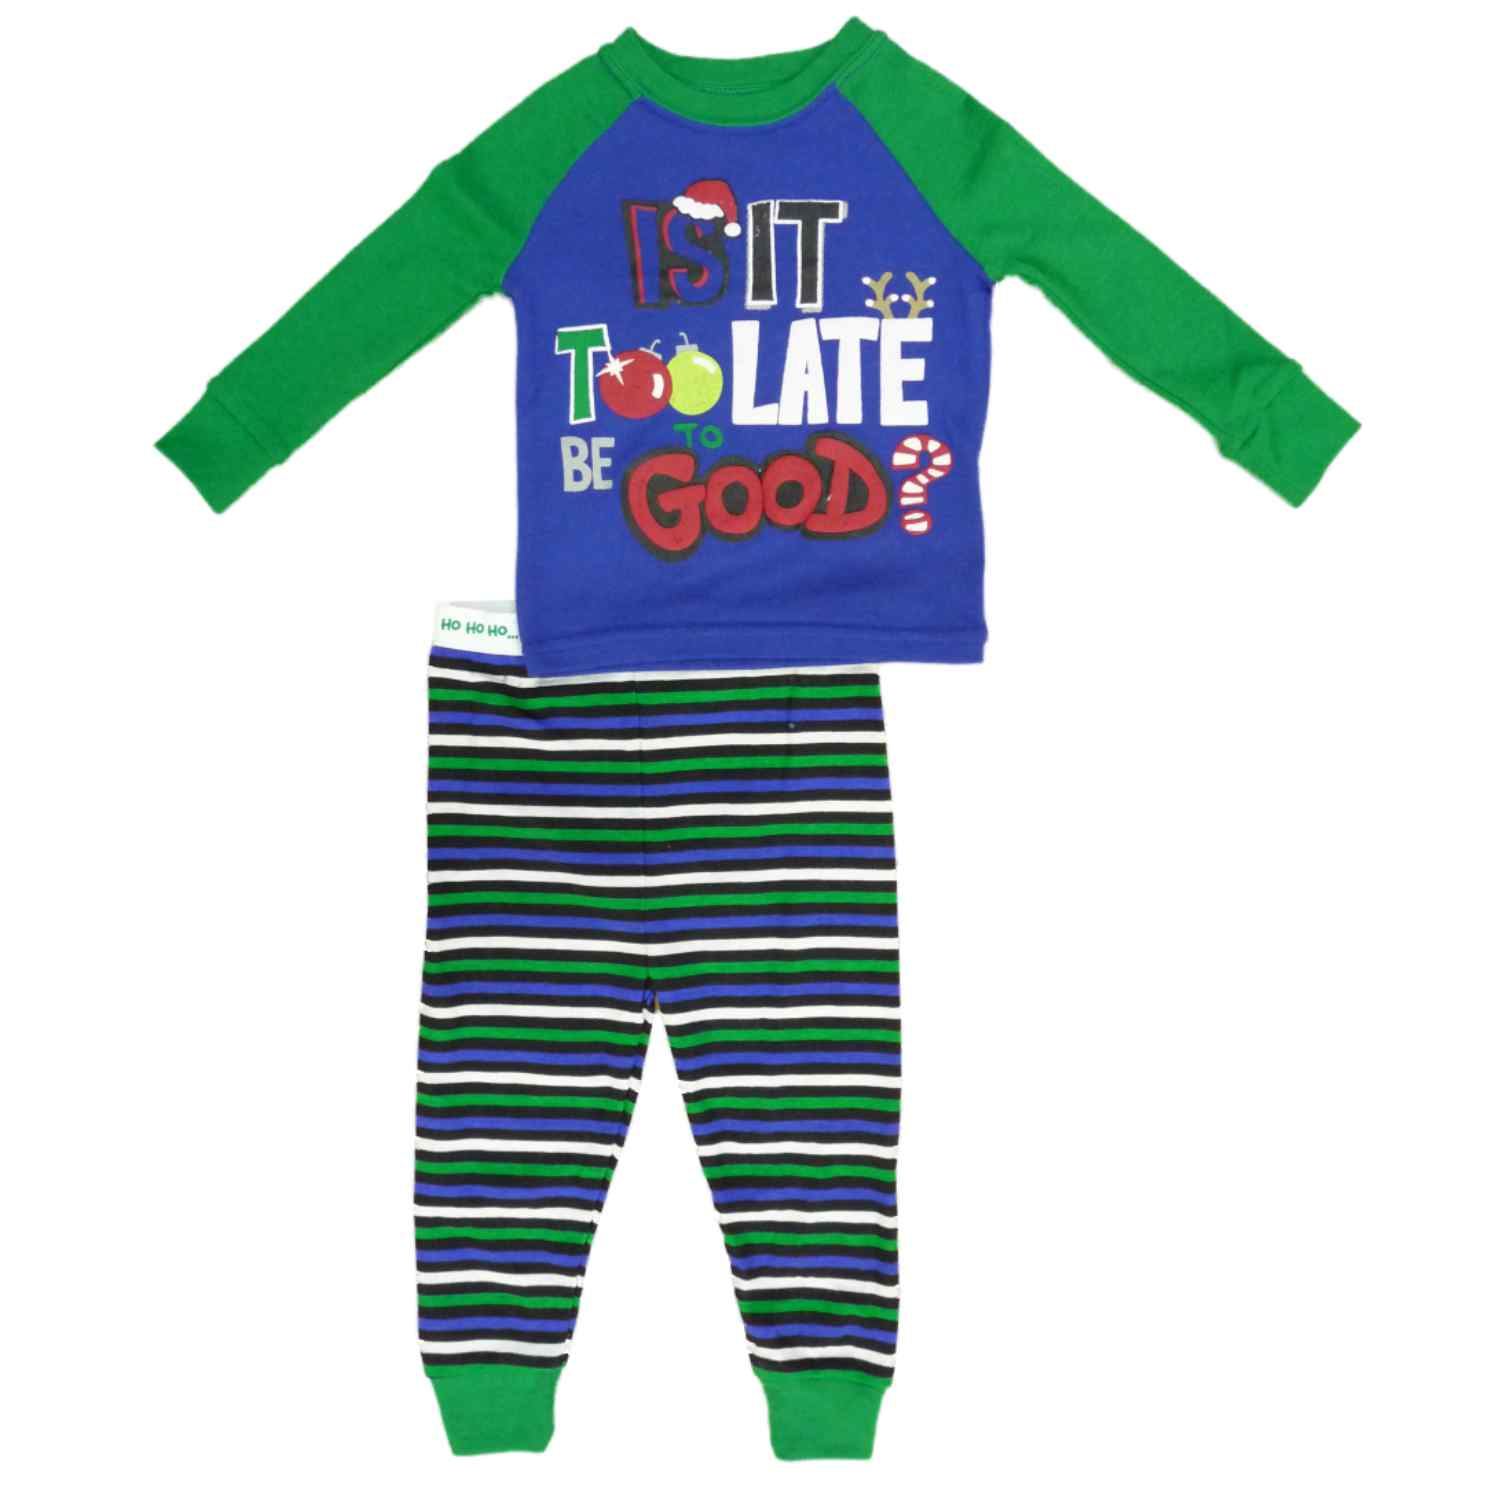 Holiday Time Infant & Toddler Boys Too Late Sleepwear Christmas Pajama Set